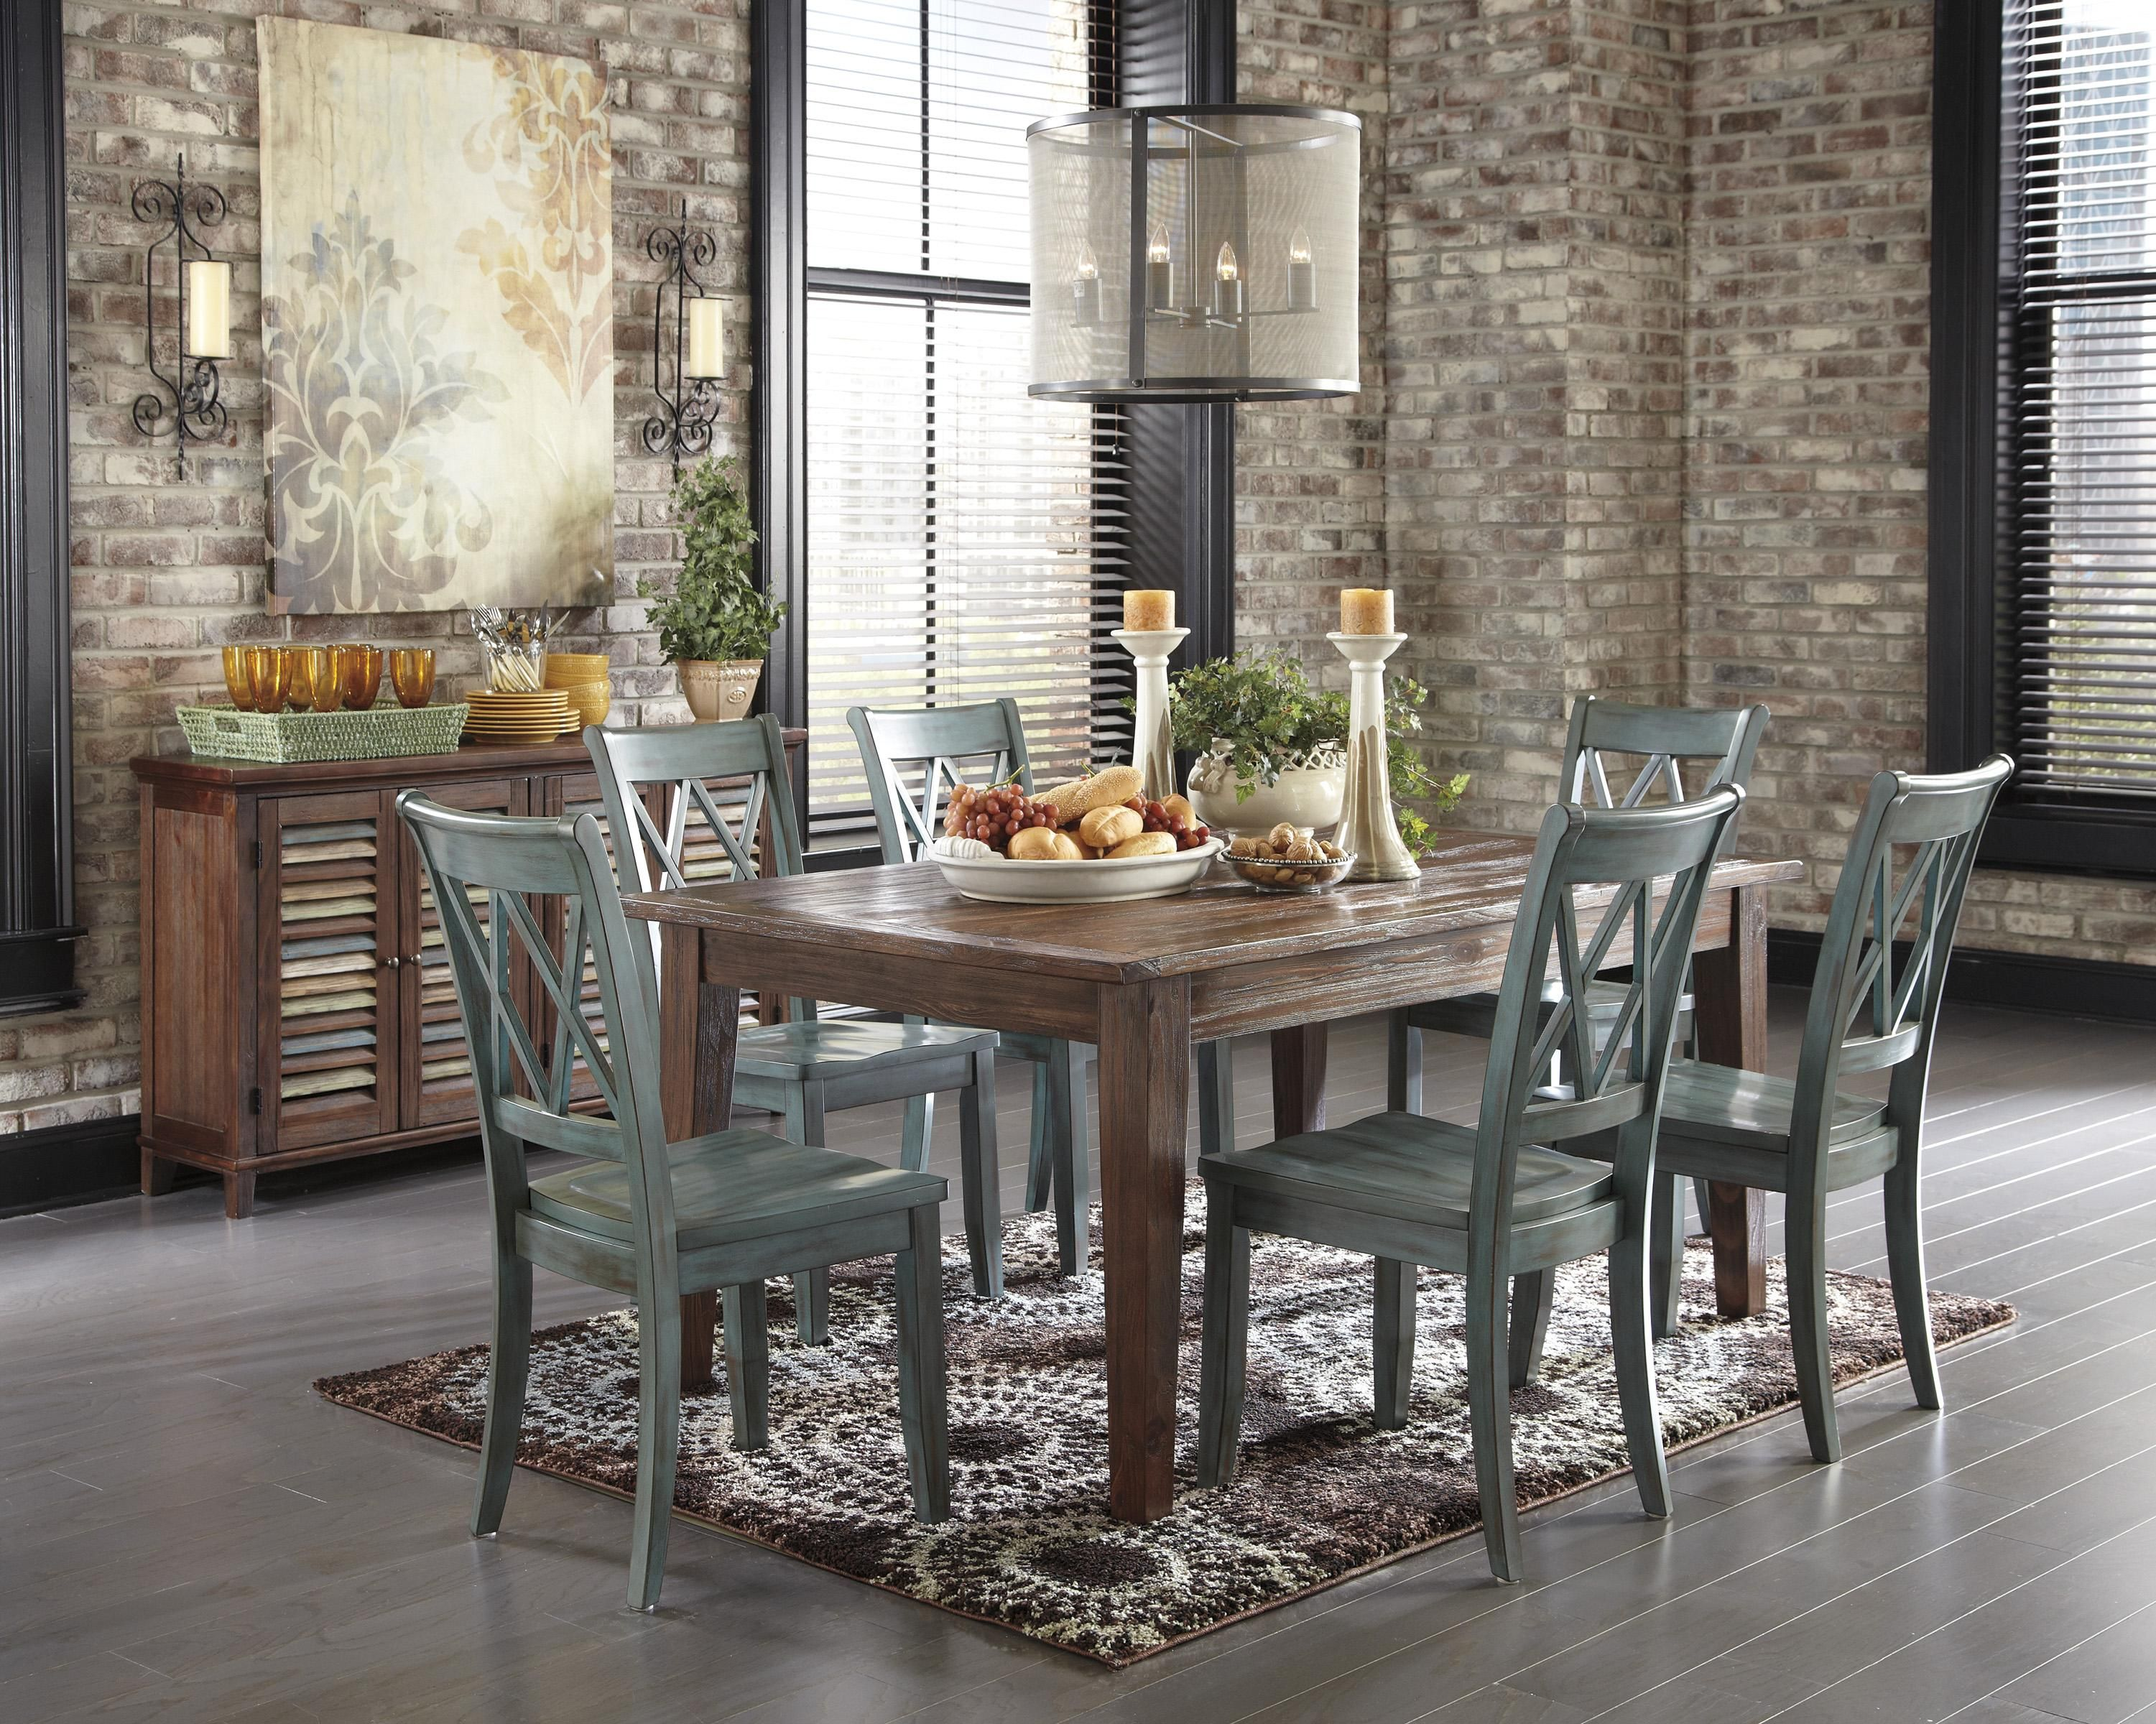 Dining Room Antique Blue Chairs With Images Wood Dining Room